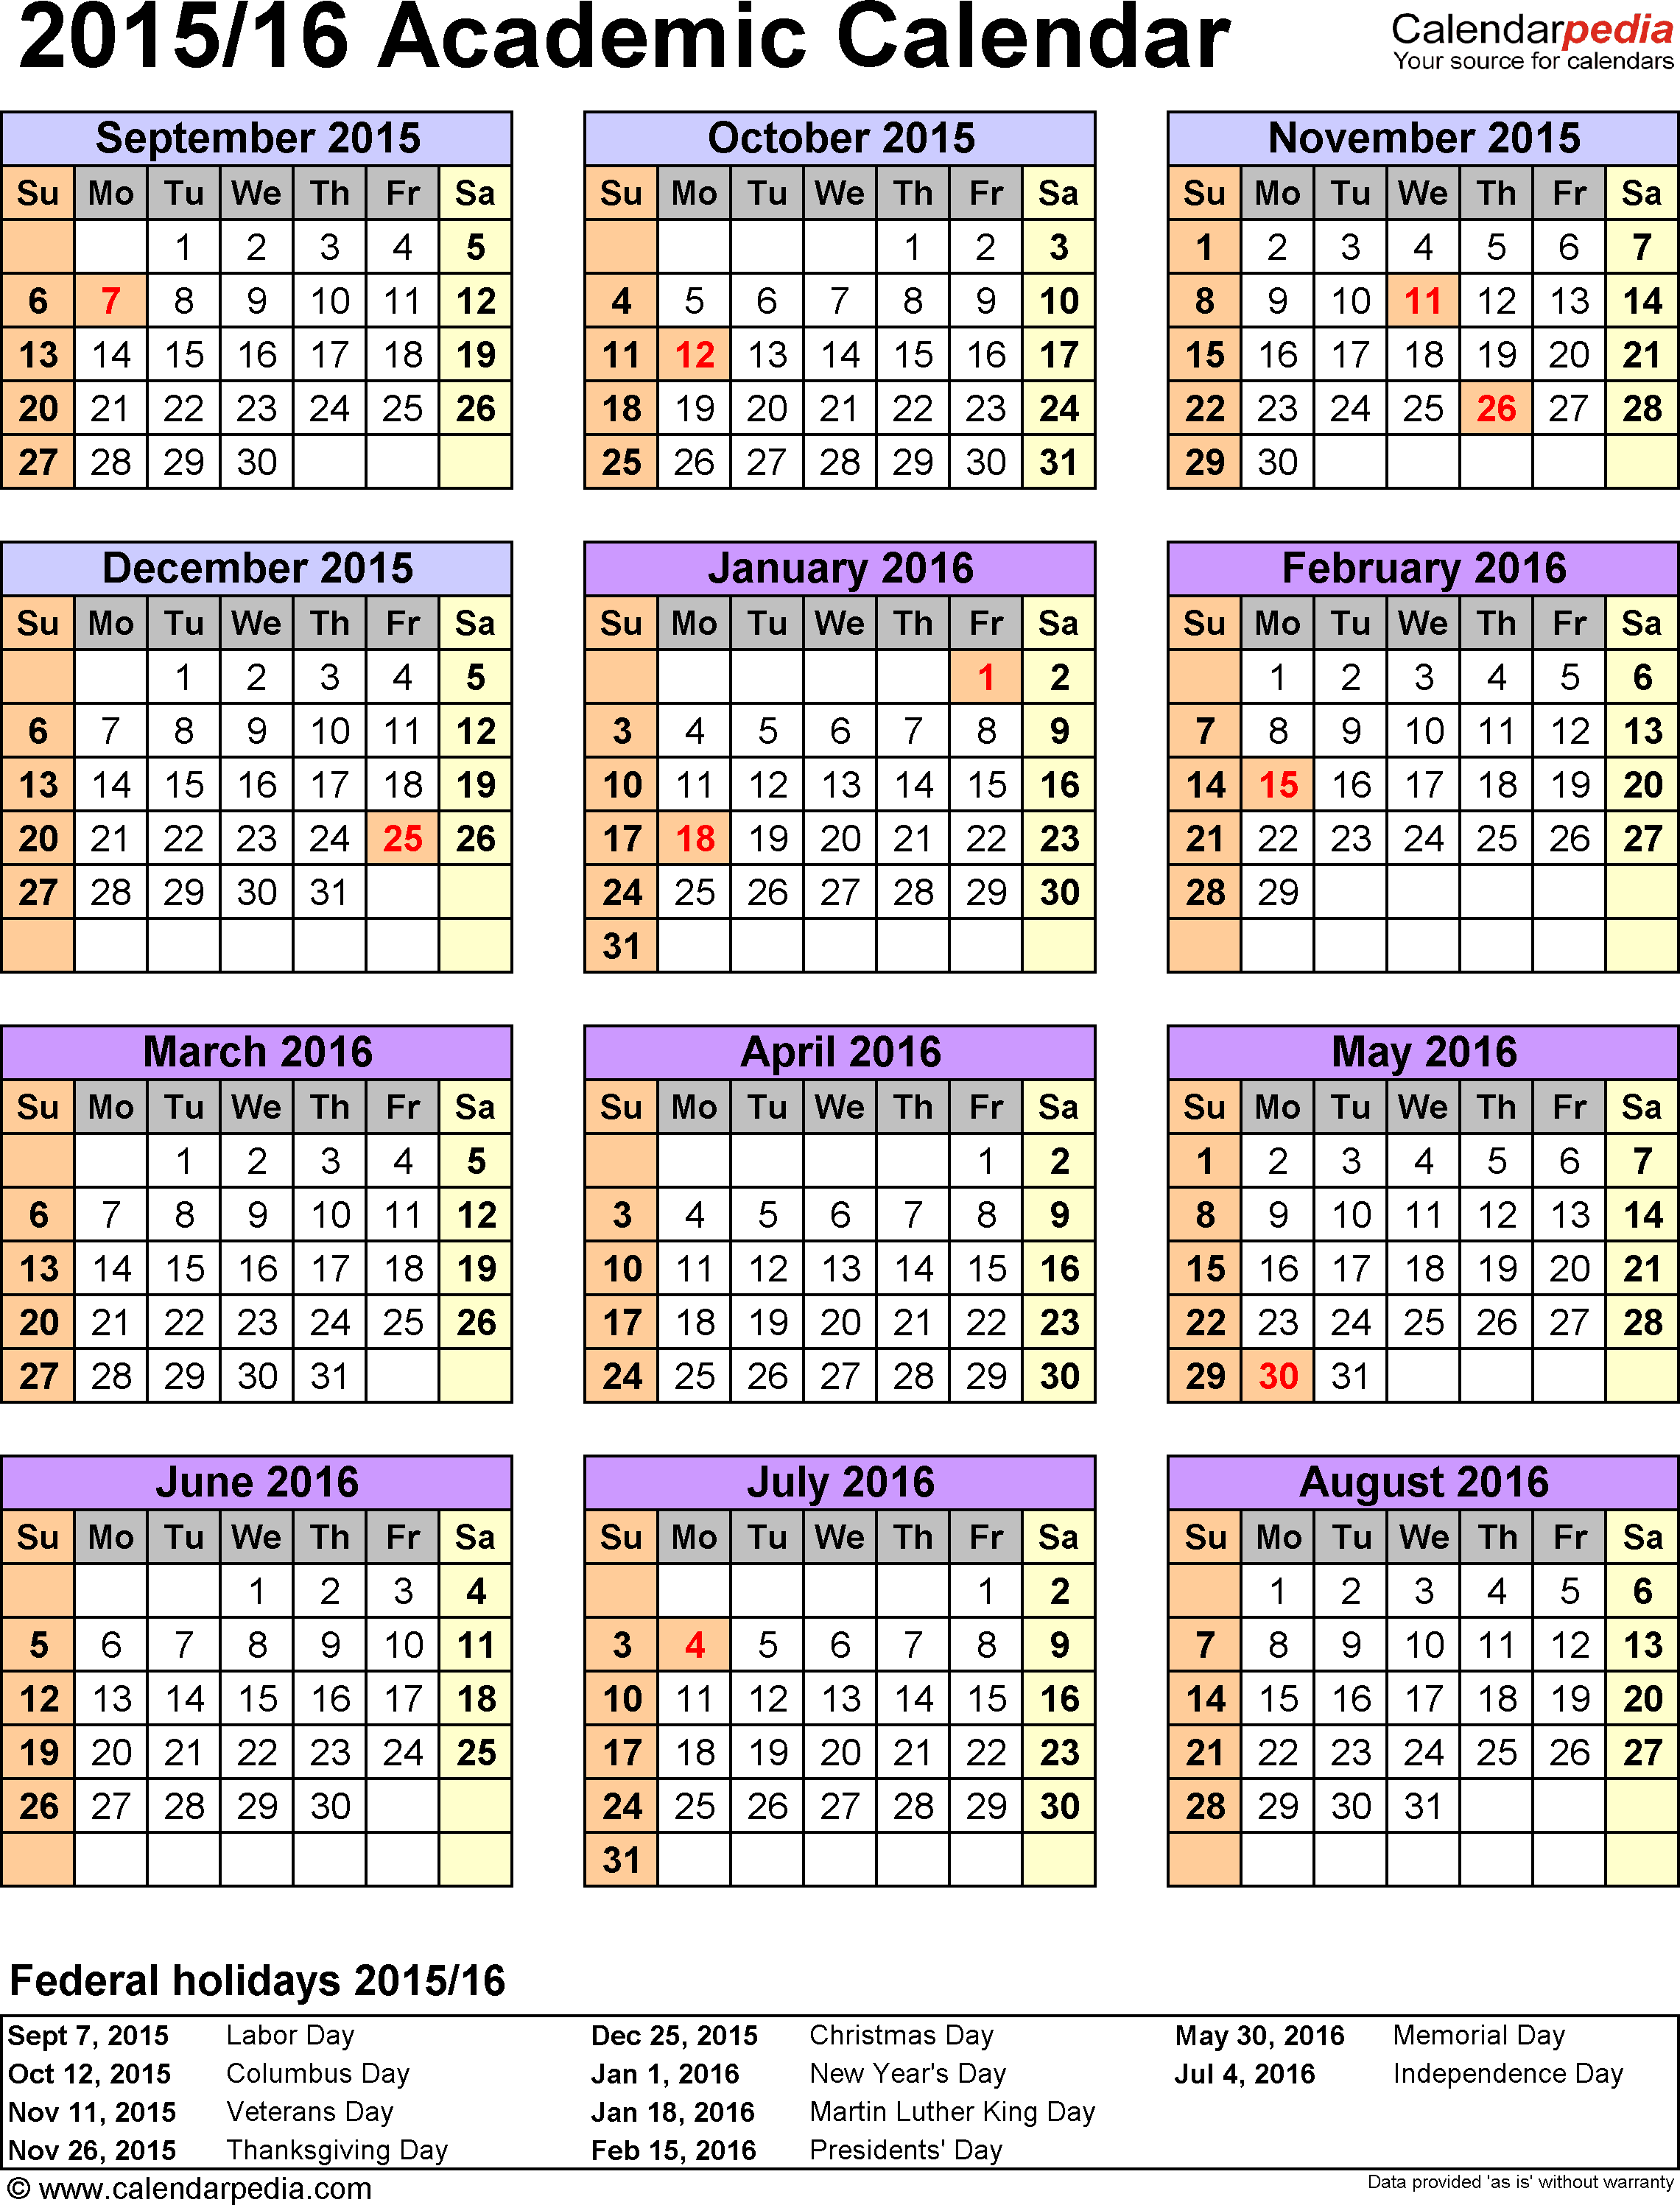 Template 7: Academic calendar 2015/16 for Excel, portrait, 1 page, year at a glance